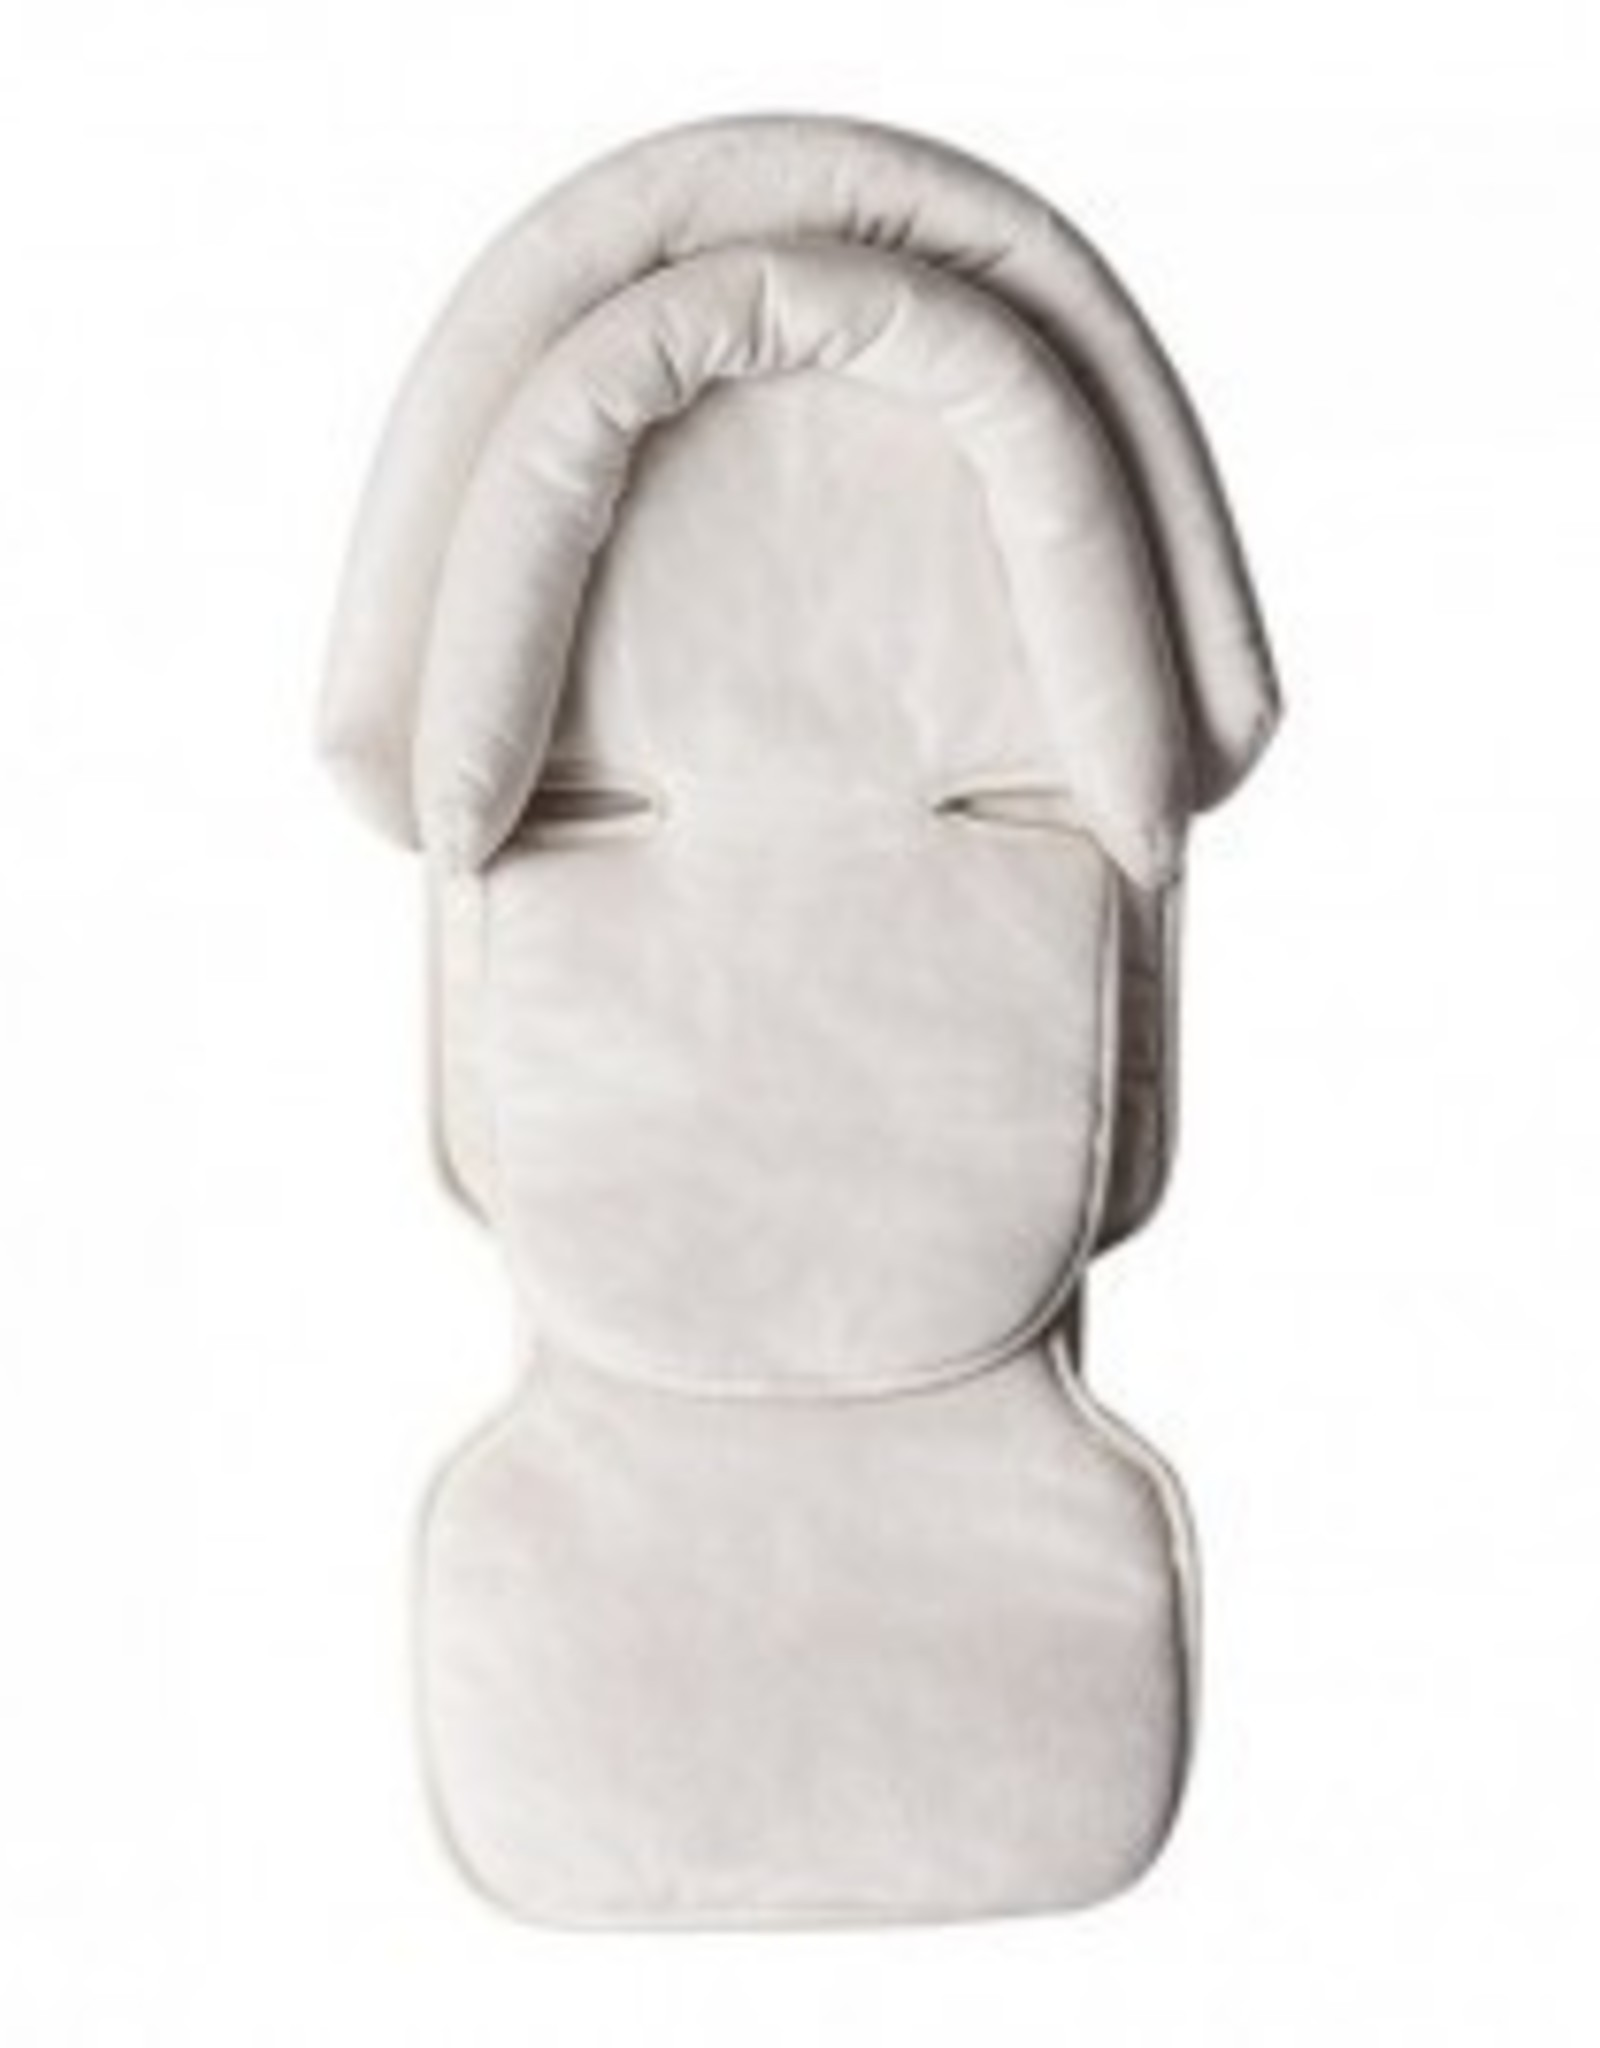 Mima Mima Baby Head Rest